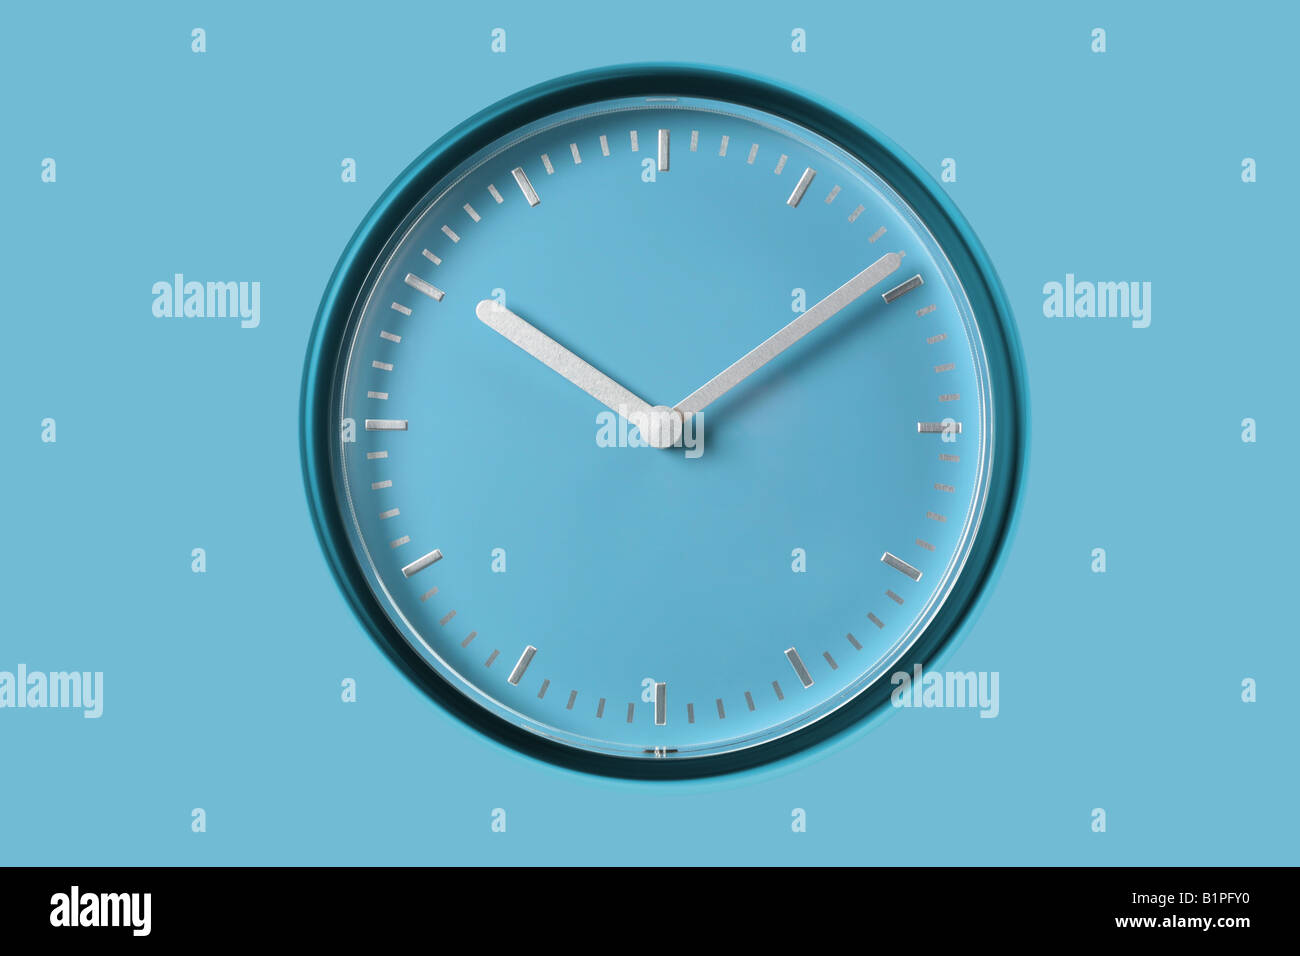 clock watch Uhr Wanduhr analog - Stock Image